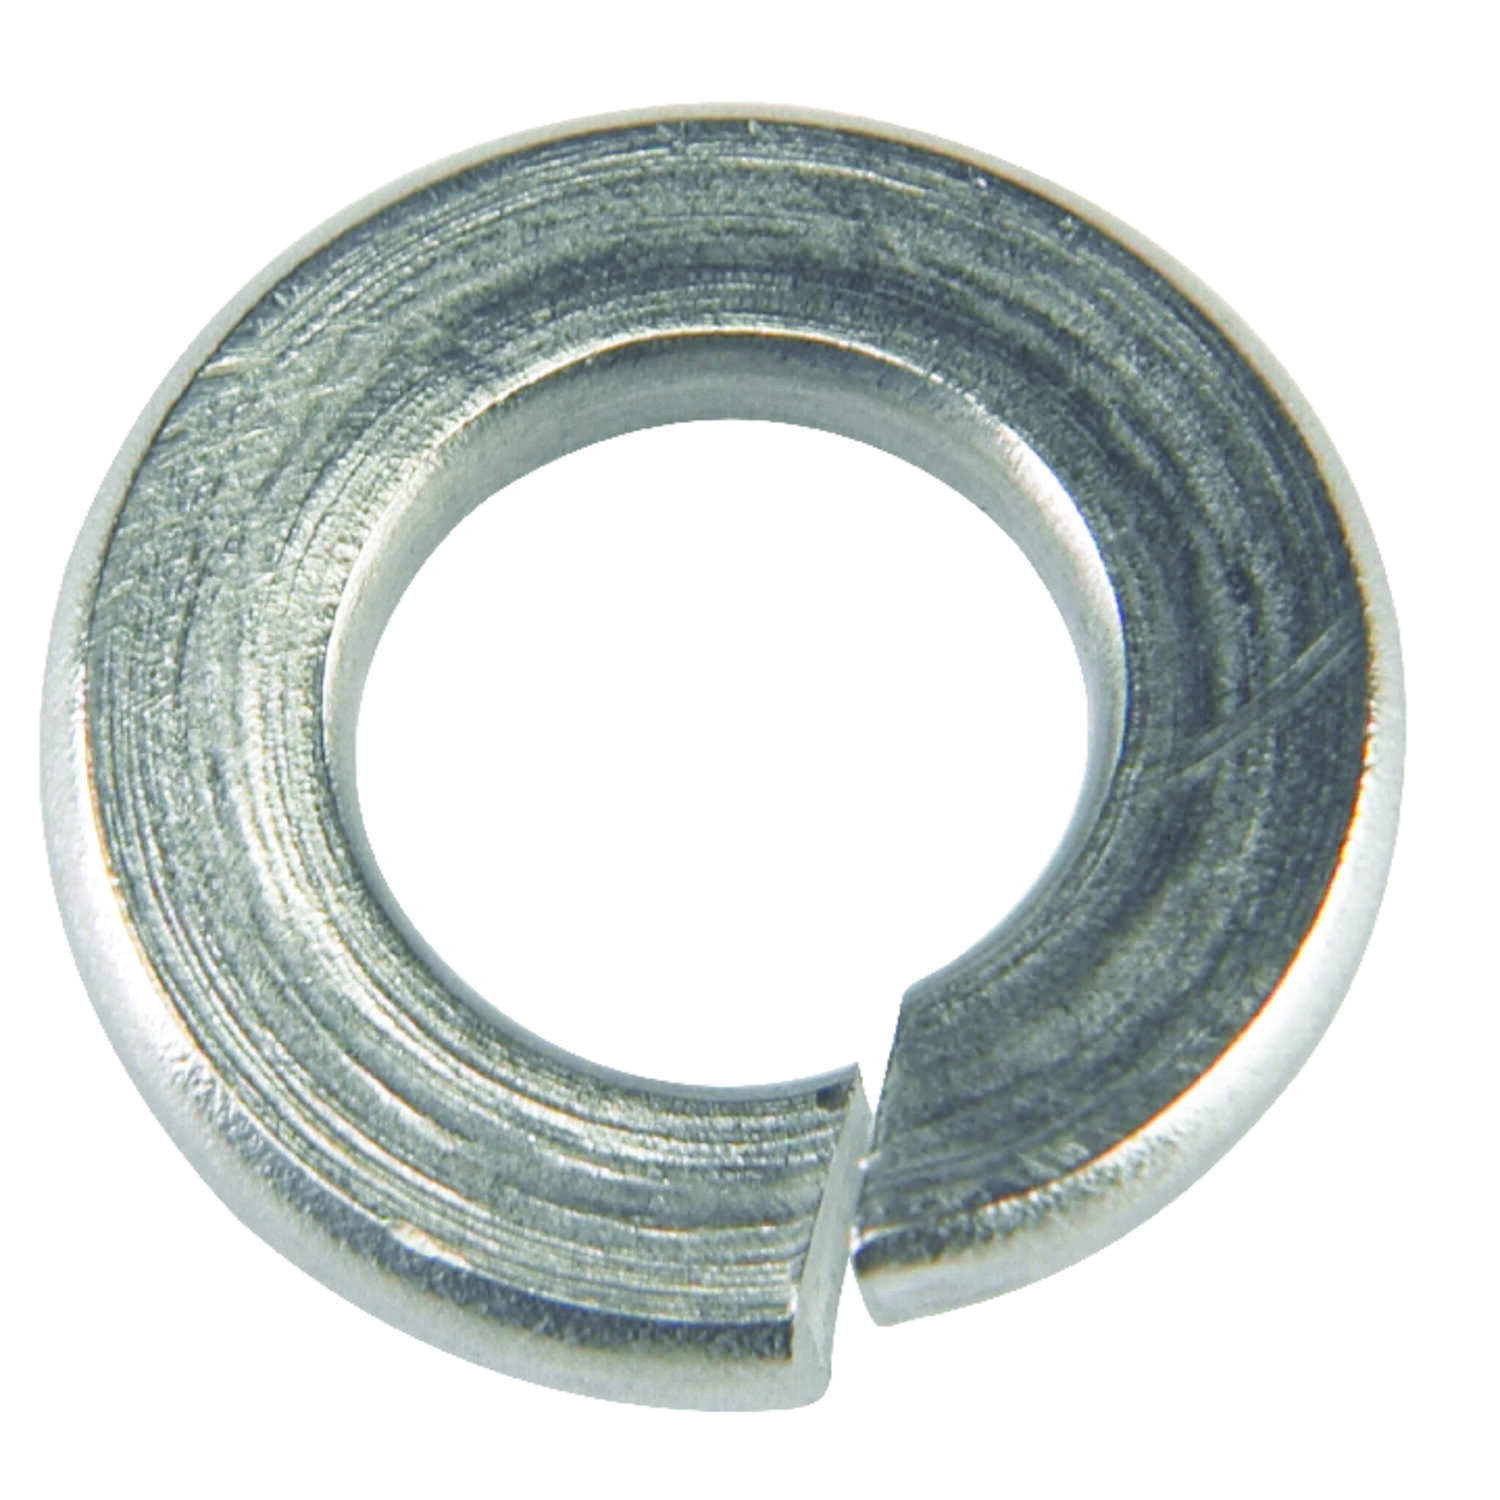 HILLMAN  Stainless Steel  Split Lock Washer  100 each 1/4 in. Dia.